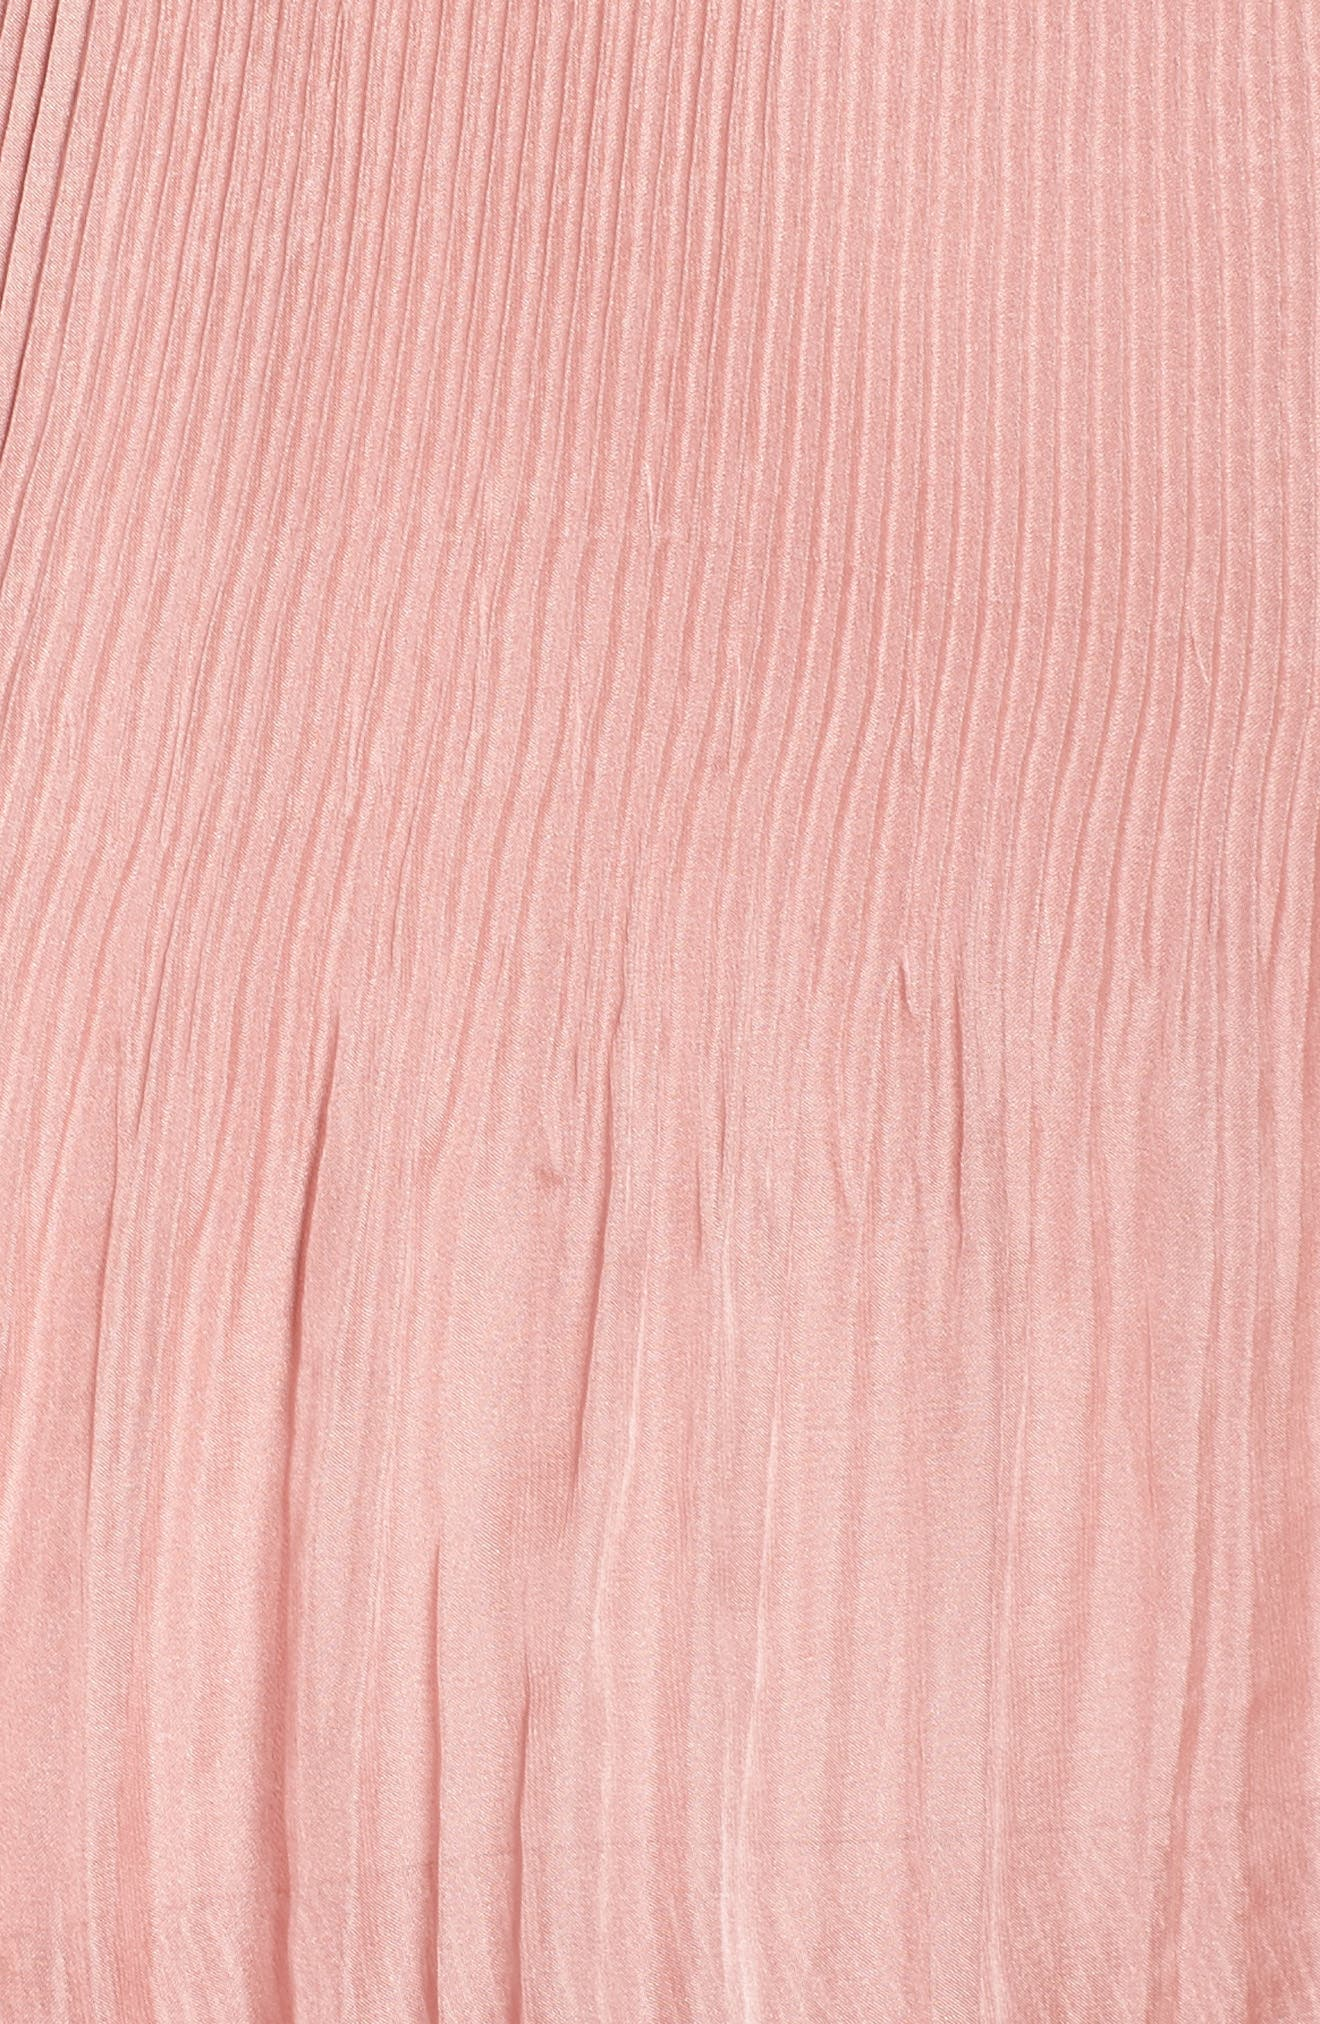 Cold Shoulder Ruffle Gown,                             Alternate thumbnail 5, color,                             Dusty Pink